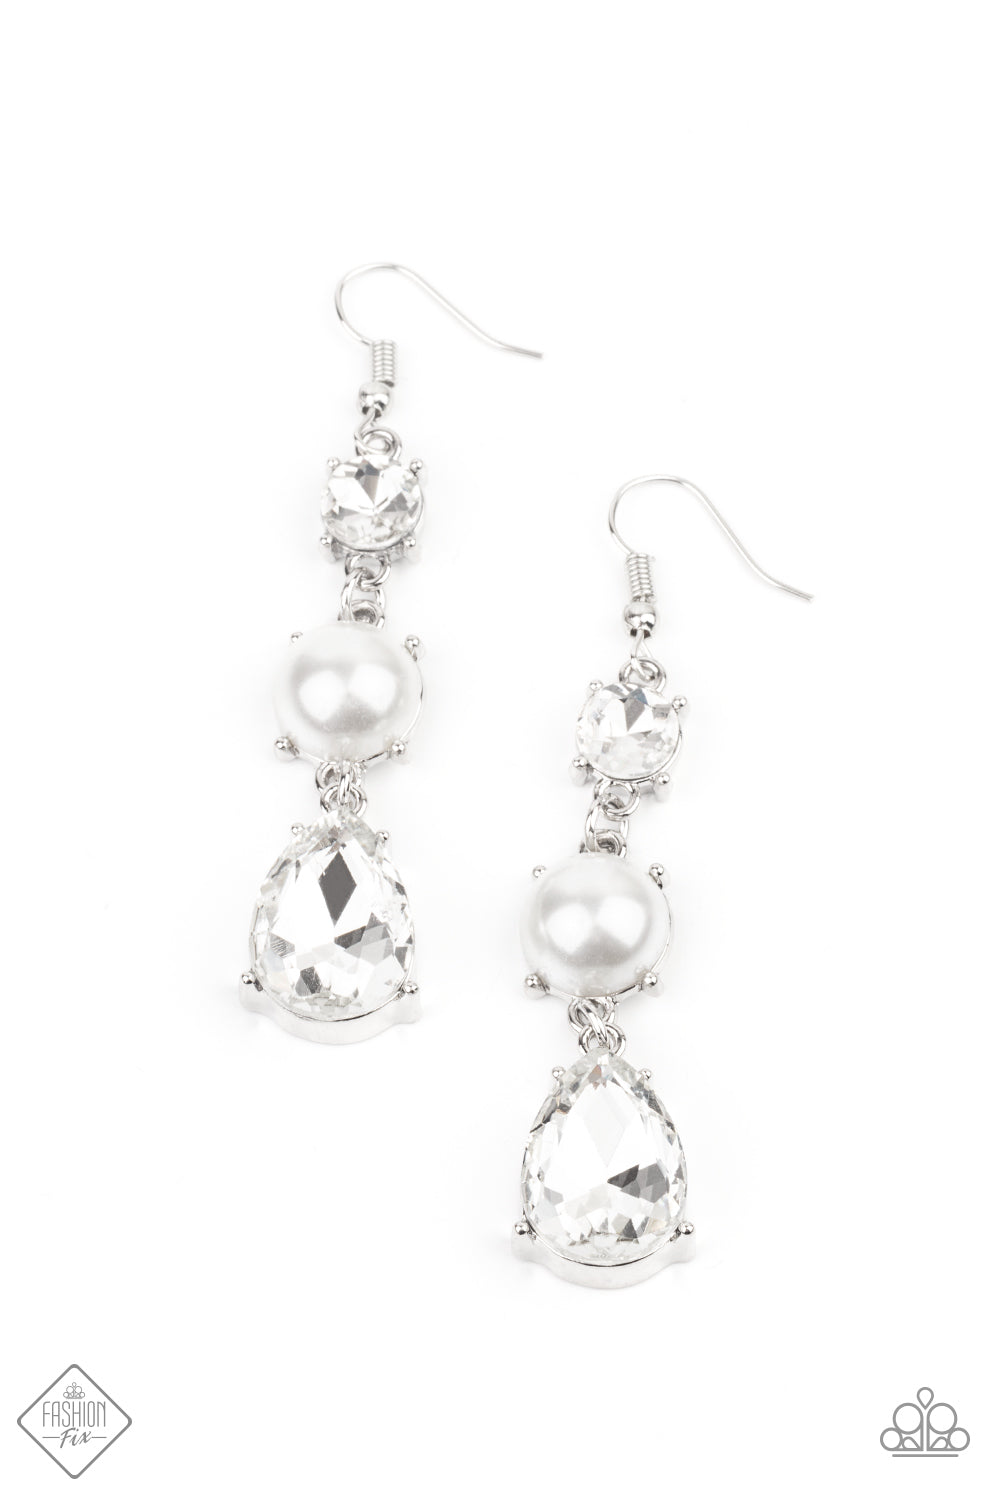 Paparazzi Accessories - Unpredictable Shimmer - White Earrings